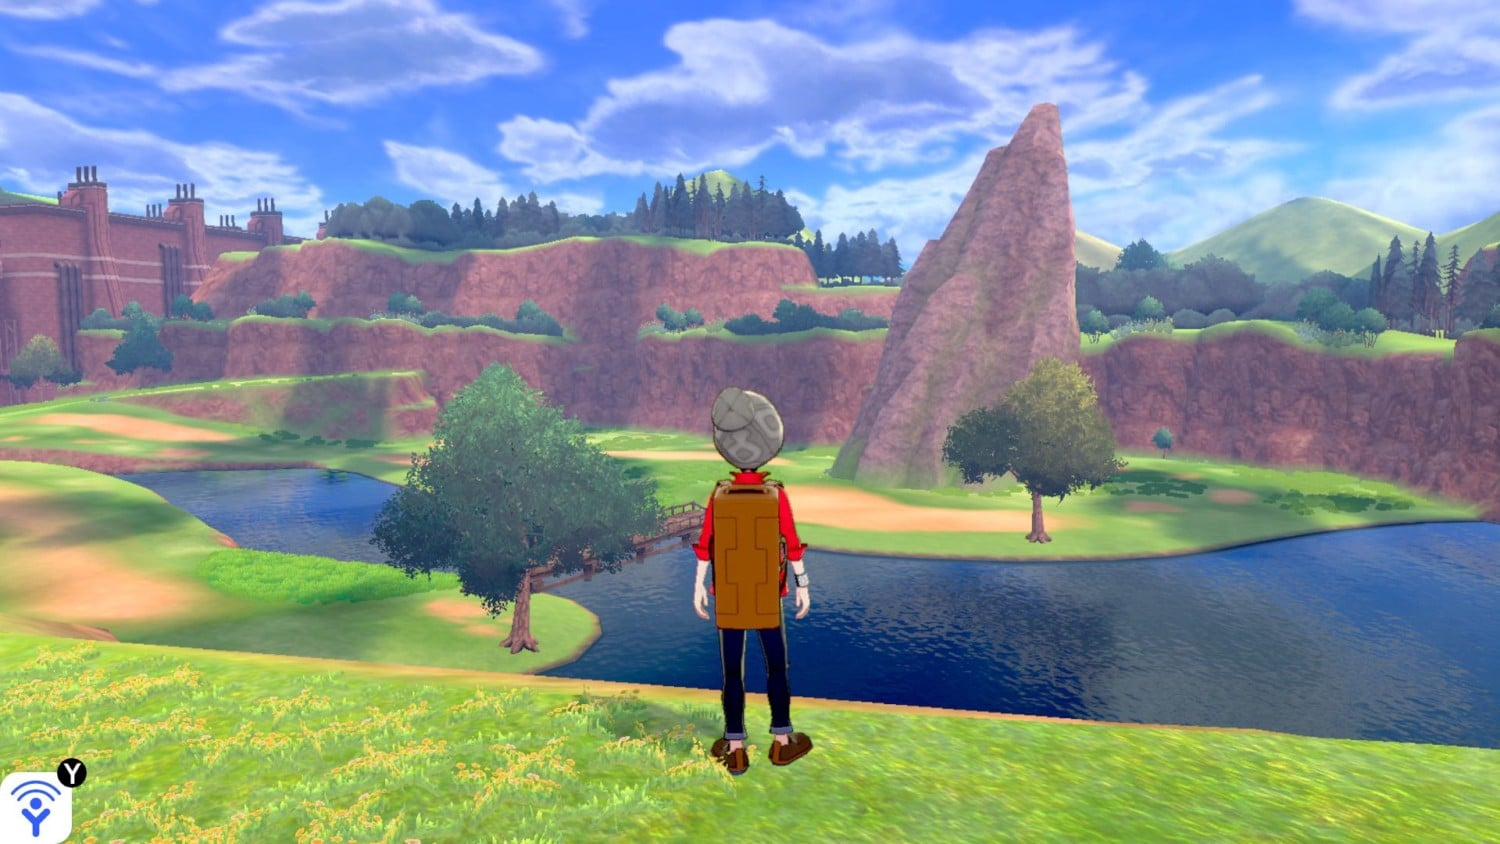 Pokemon Sword and Shield – Most Hated at E3 2019